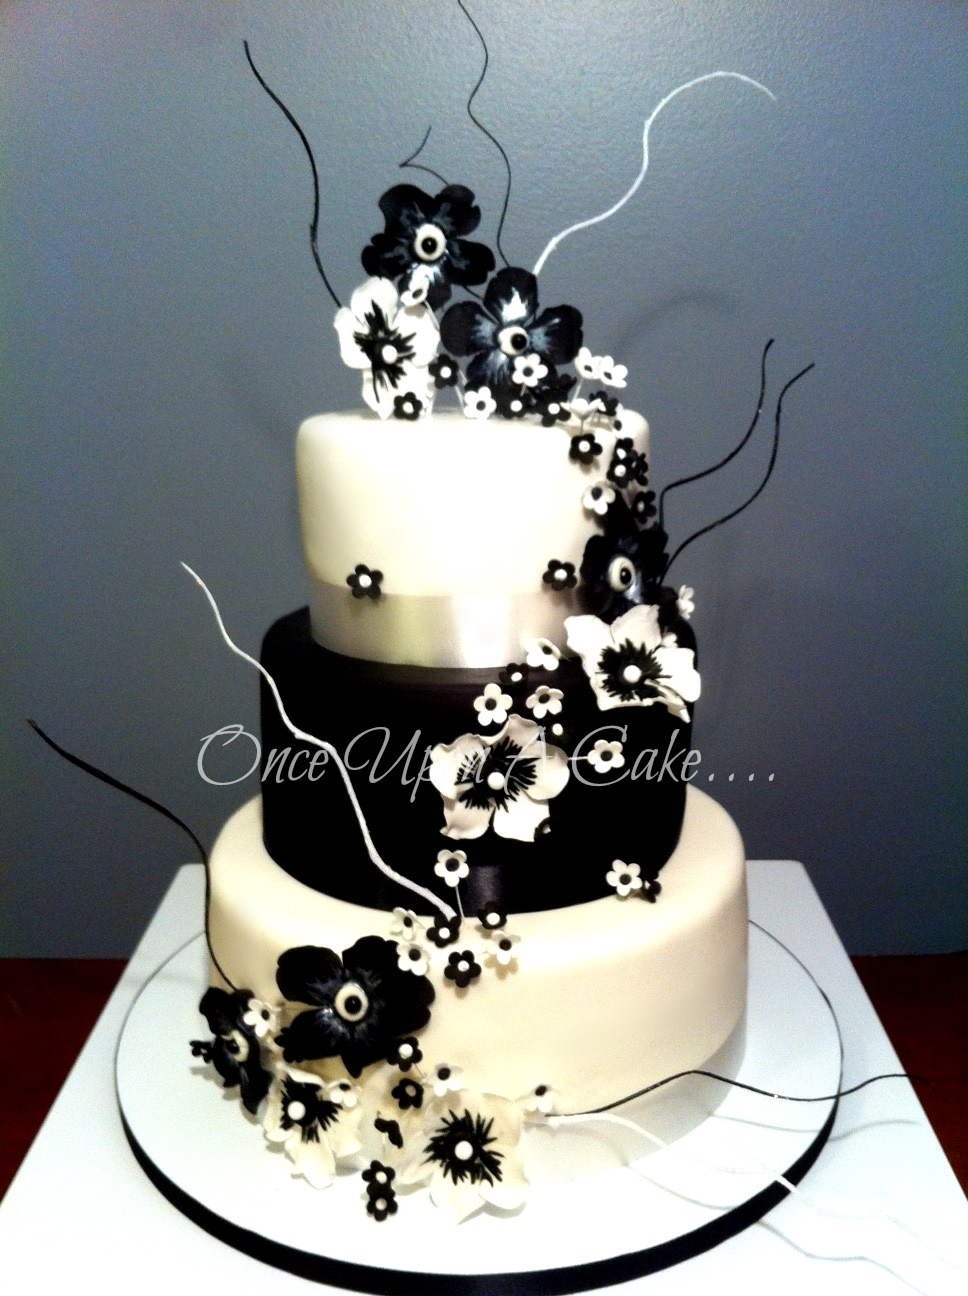 once.upon.a.cake@hotmail - 780940-9744 - leduc alberta